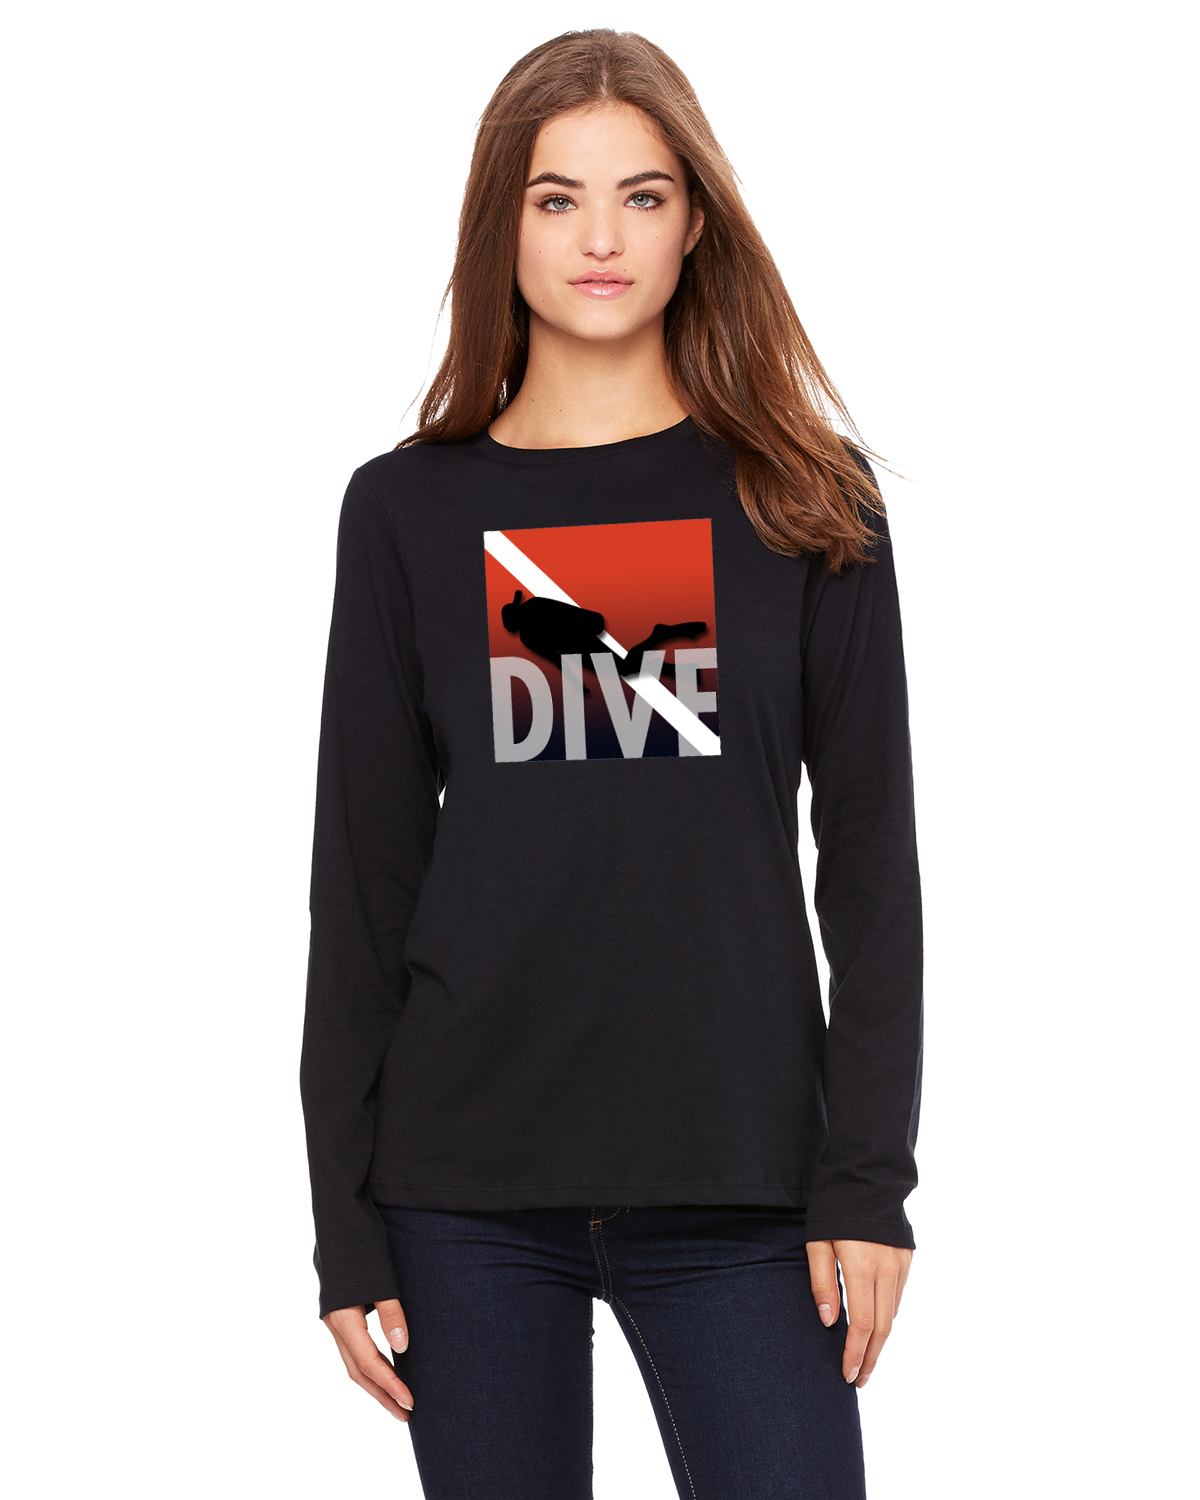 Life is Balance inspirational scuba diving long sleeve t shirts for ... 600970856